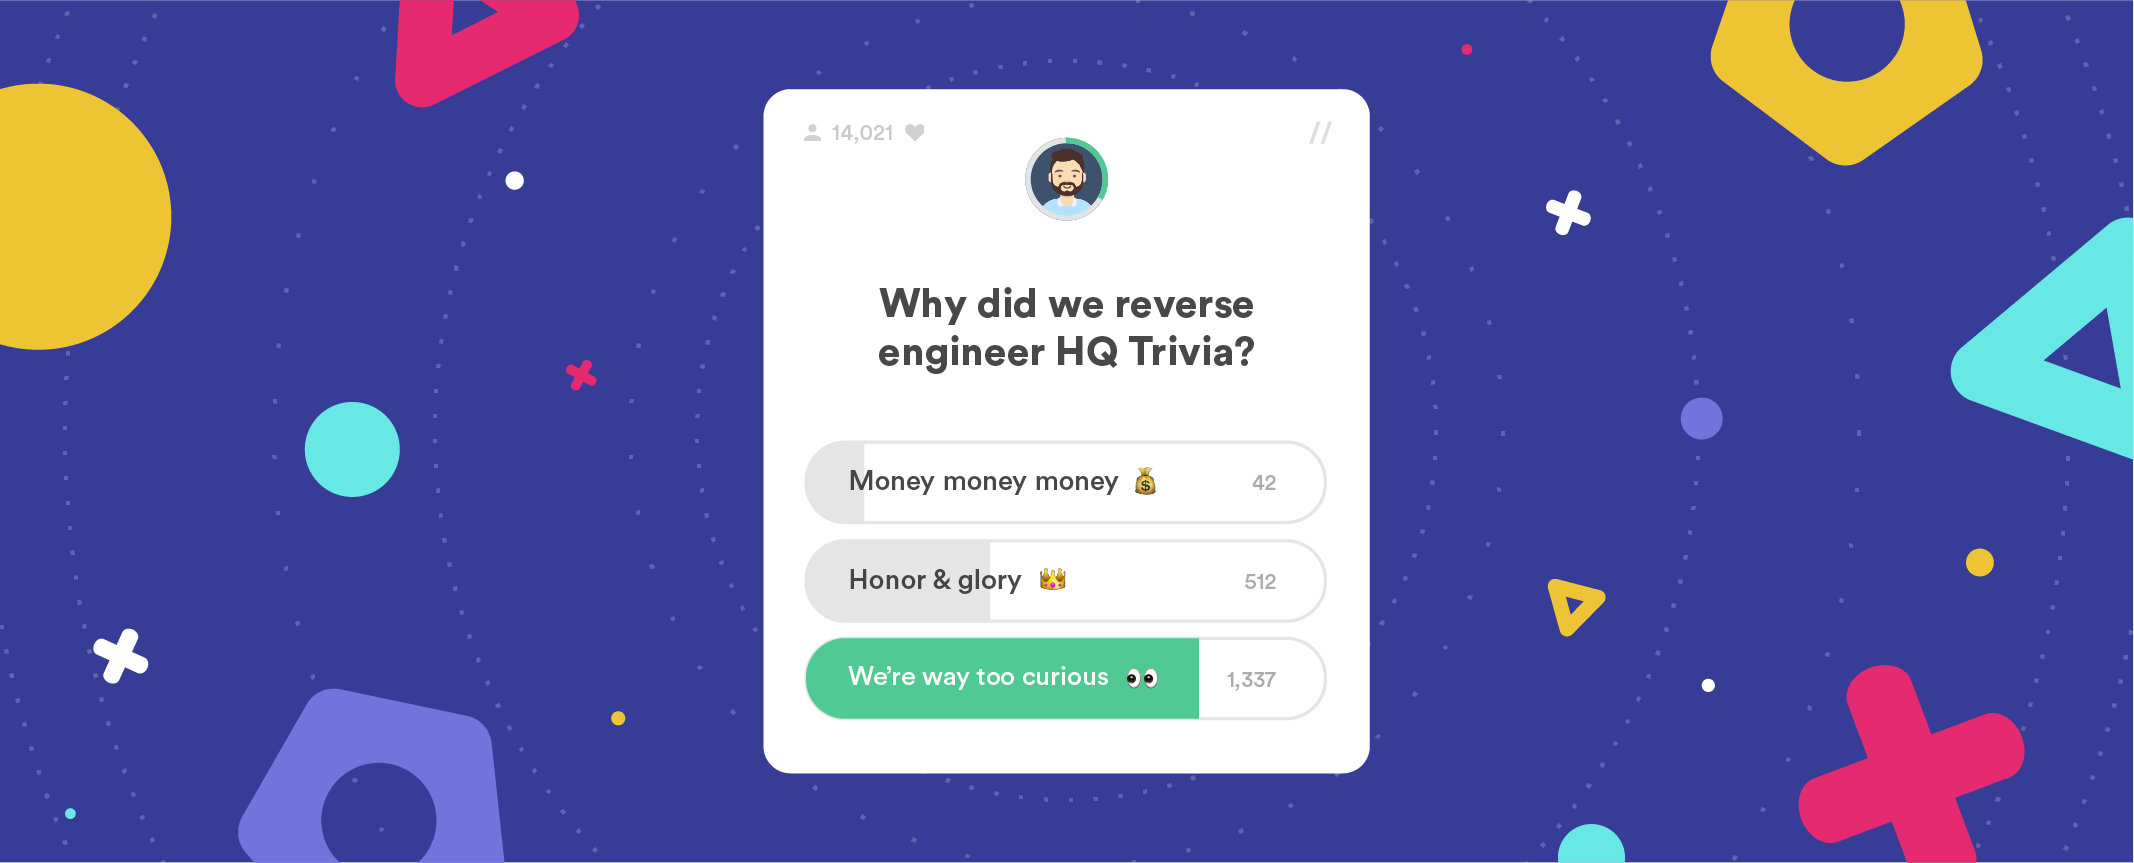 HQ Trivia reverse engineering | FABERNOVEL